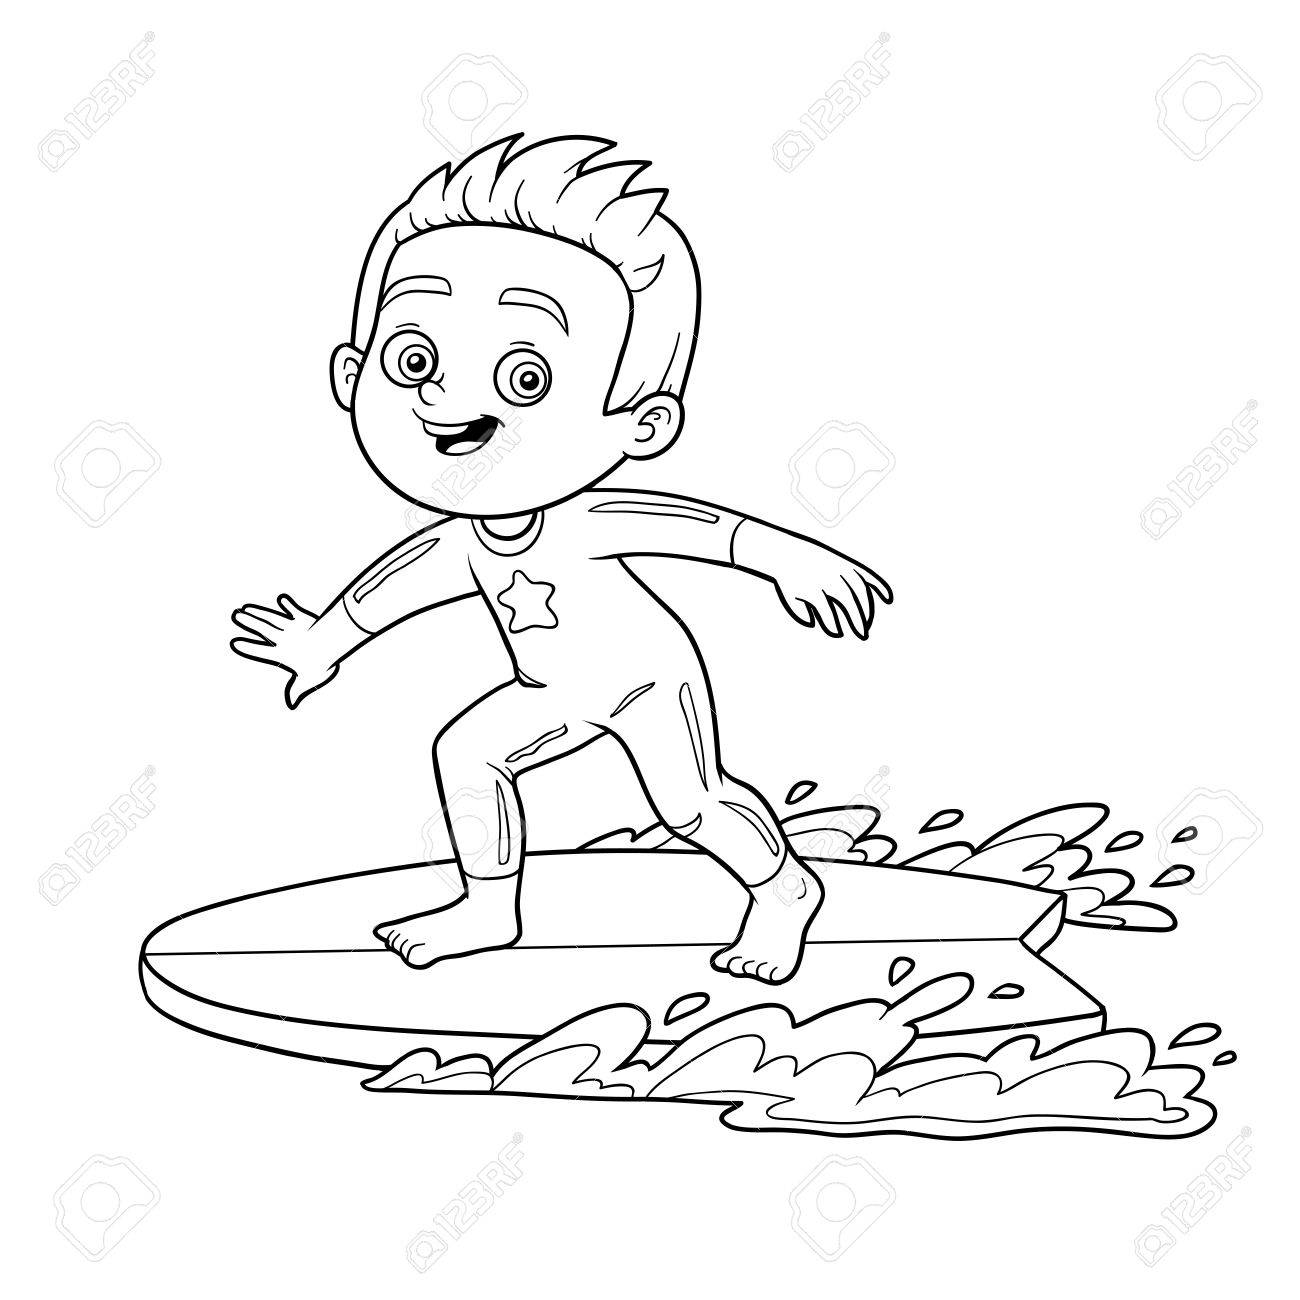 Coloring Book For Children. A Boy Riding A Surf Royalty Free ...